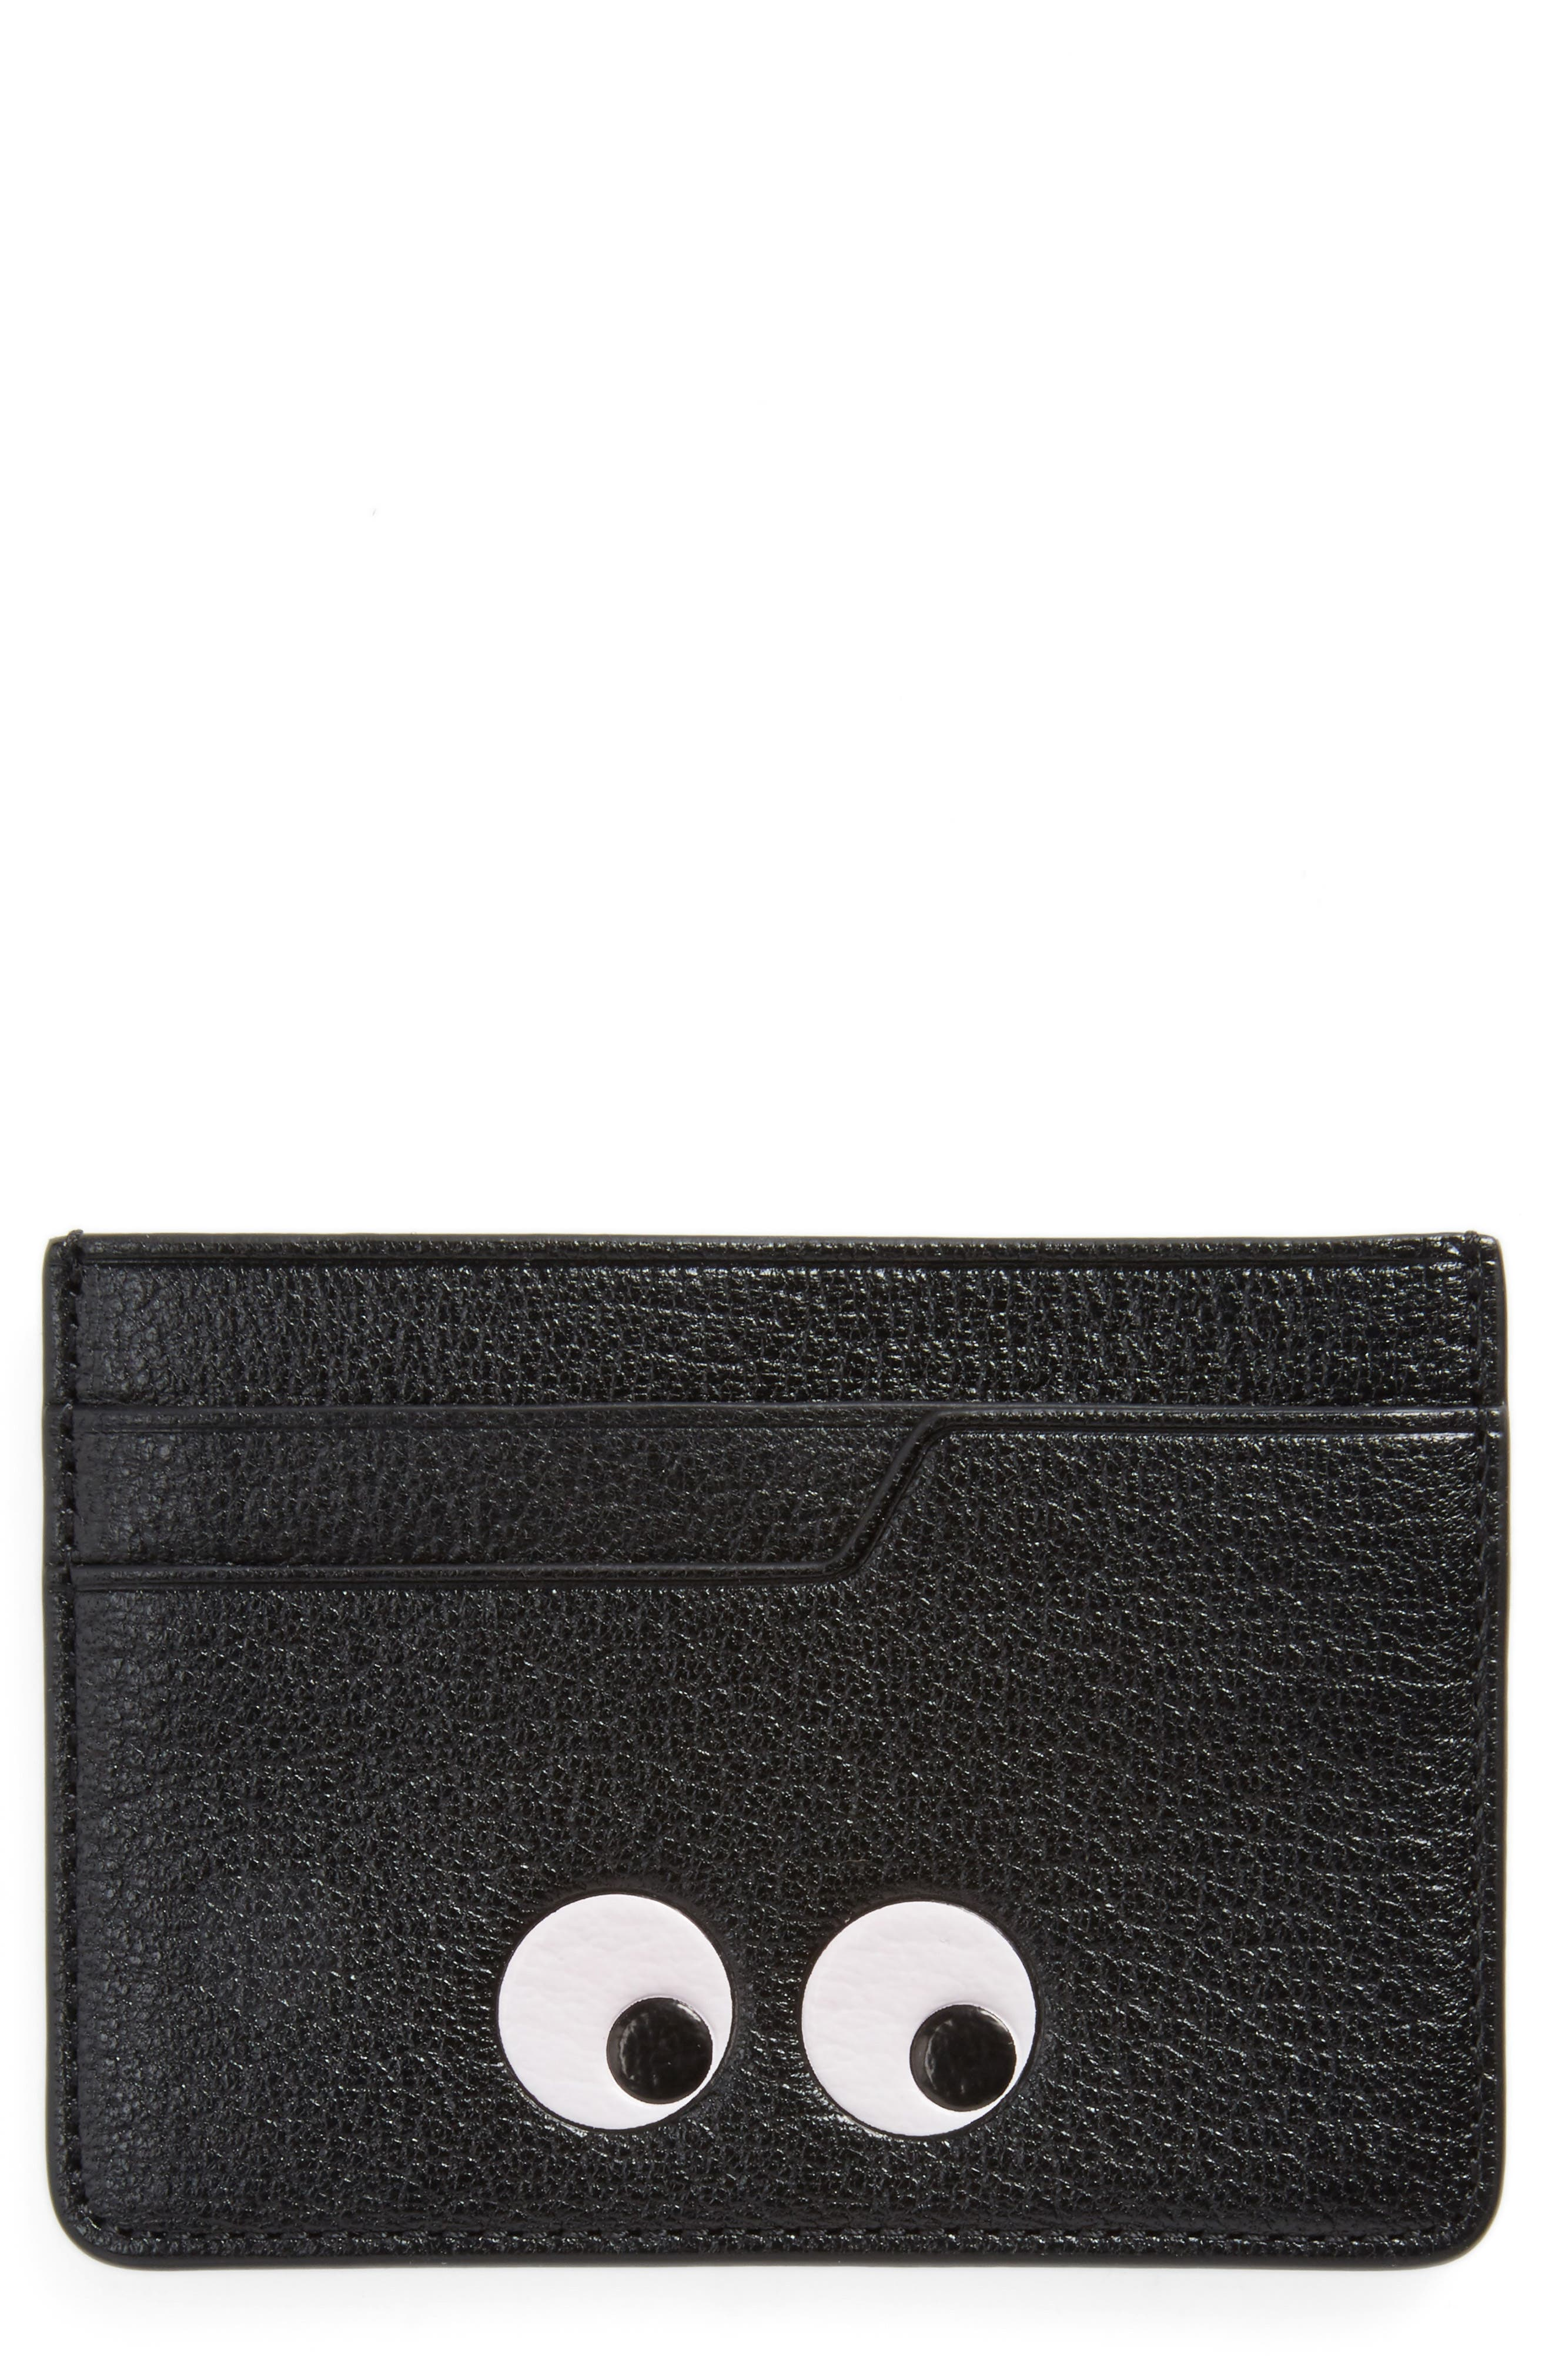 Main Image - Anya Hindmarch Eyes Leather Card Case